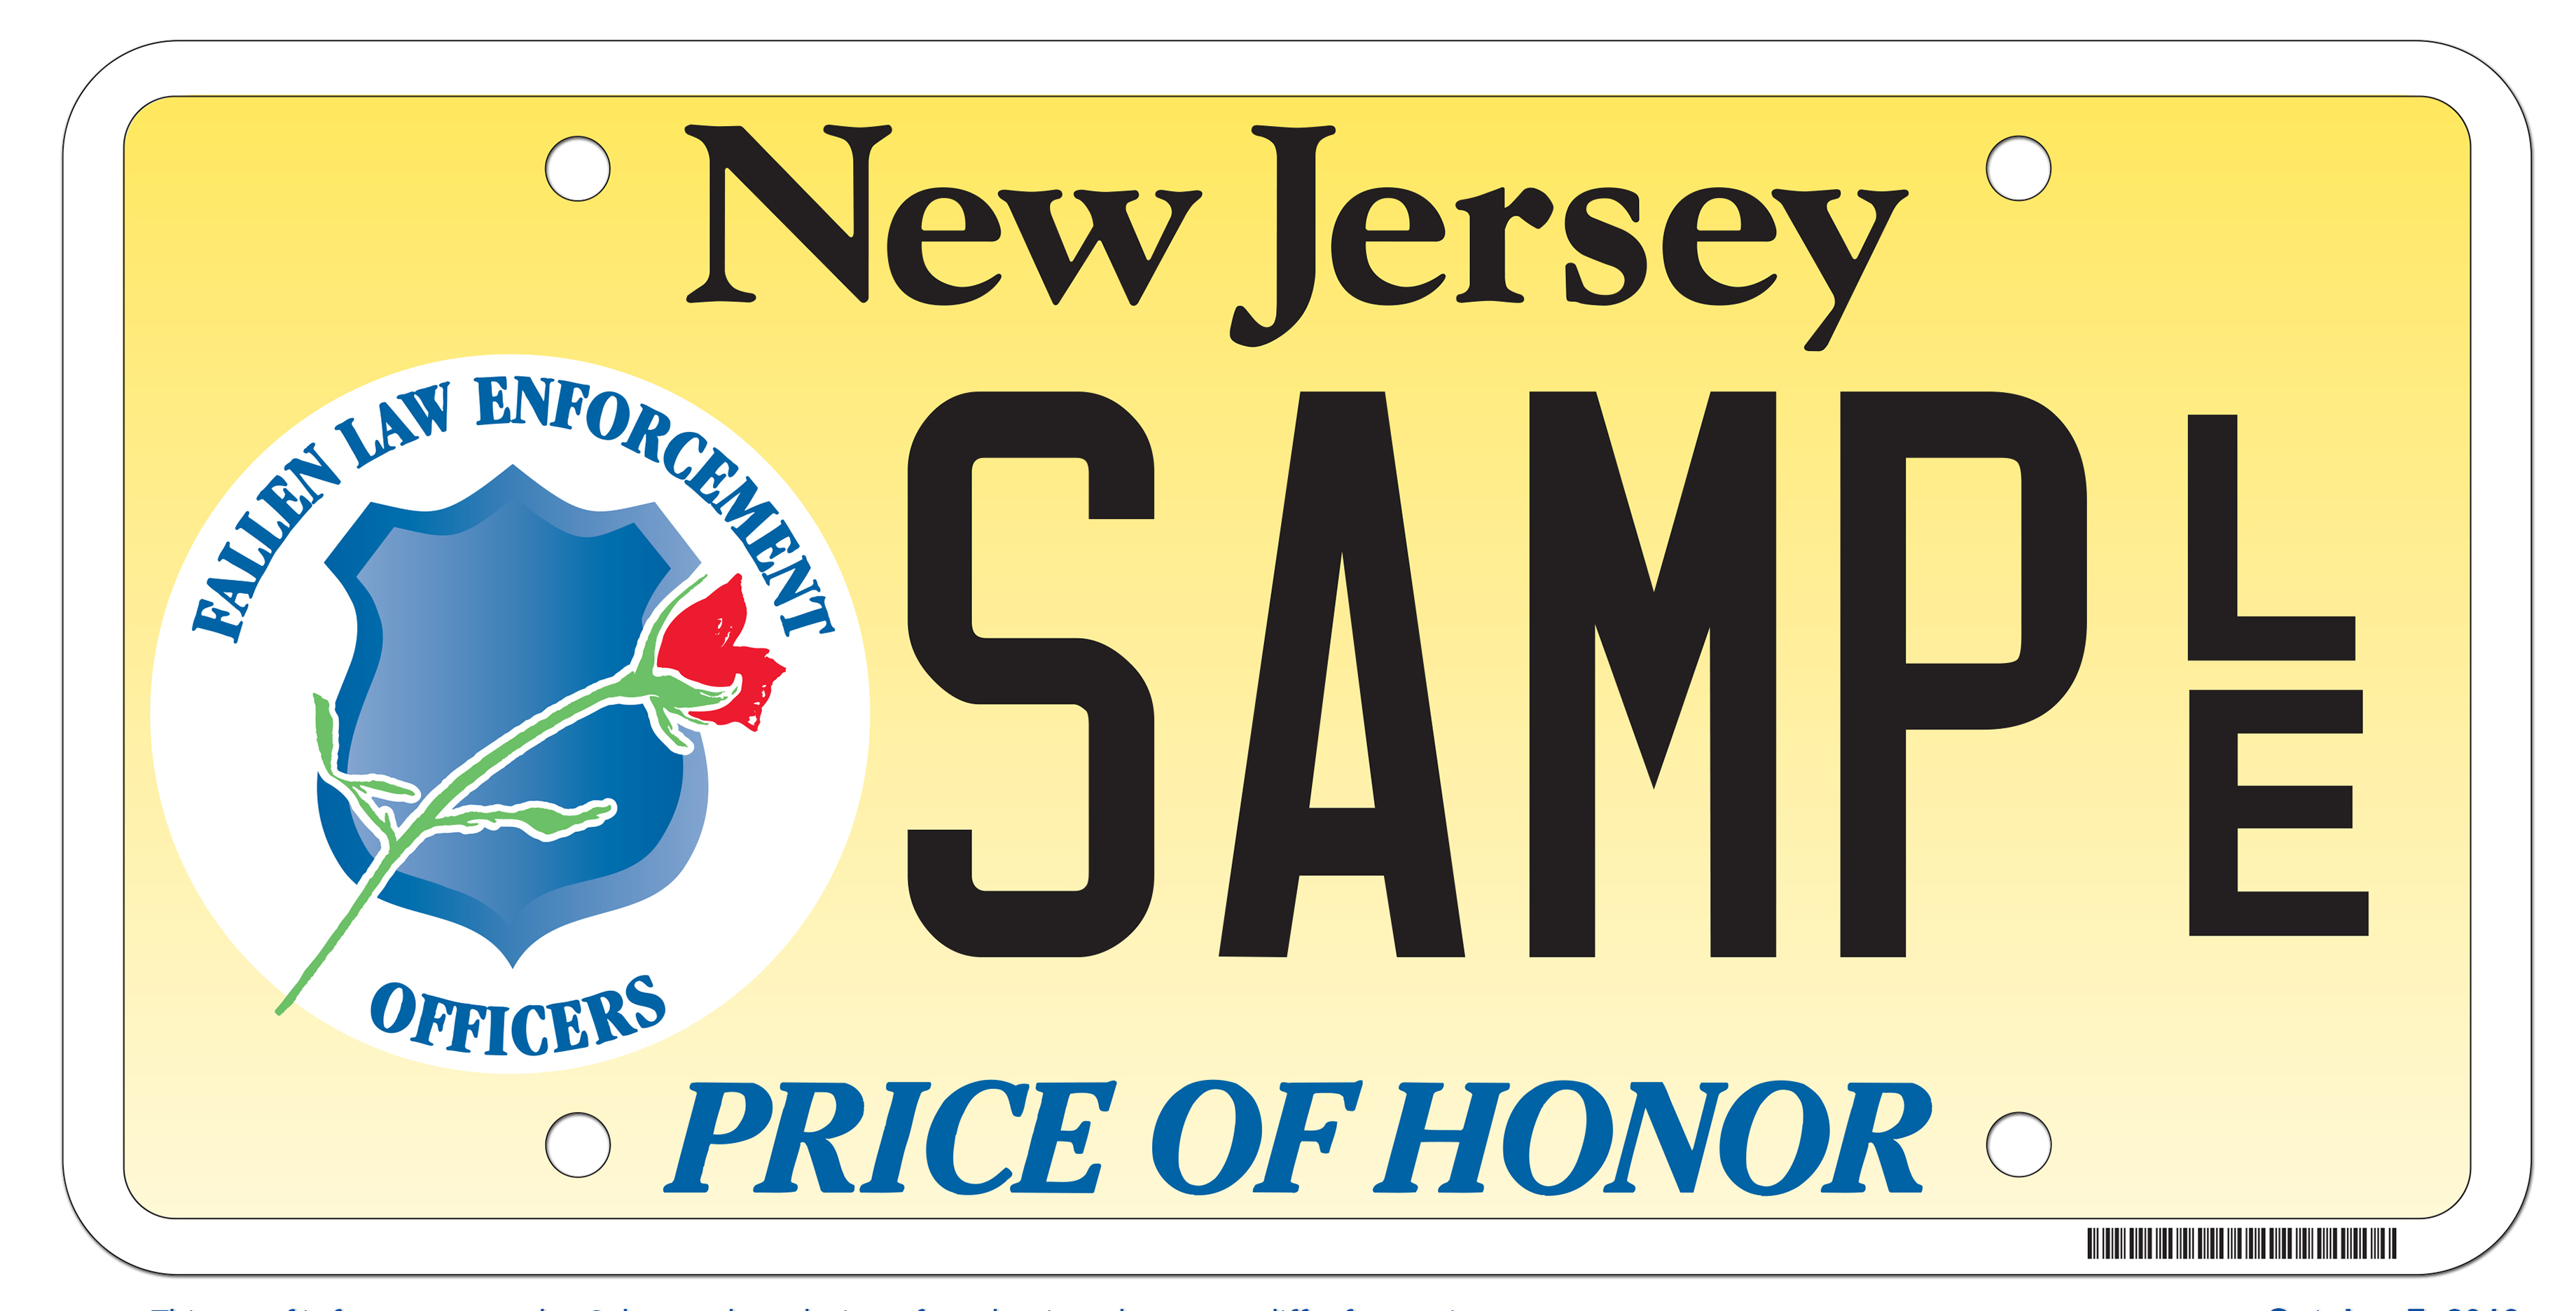 Nj people price of honor license plate vw gti forum for Nj state motor vehicle inspection stations